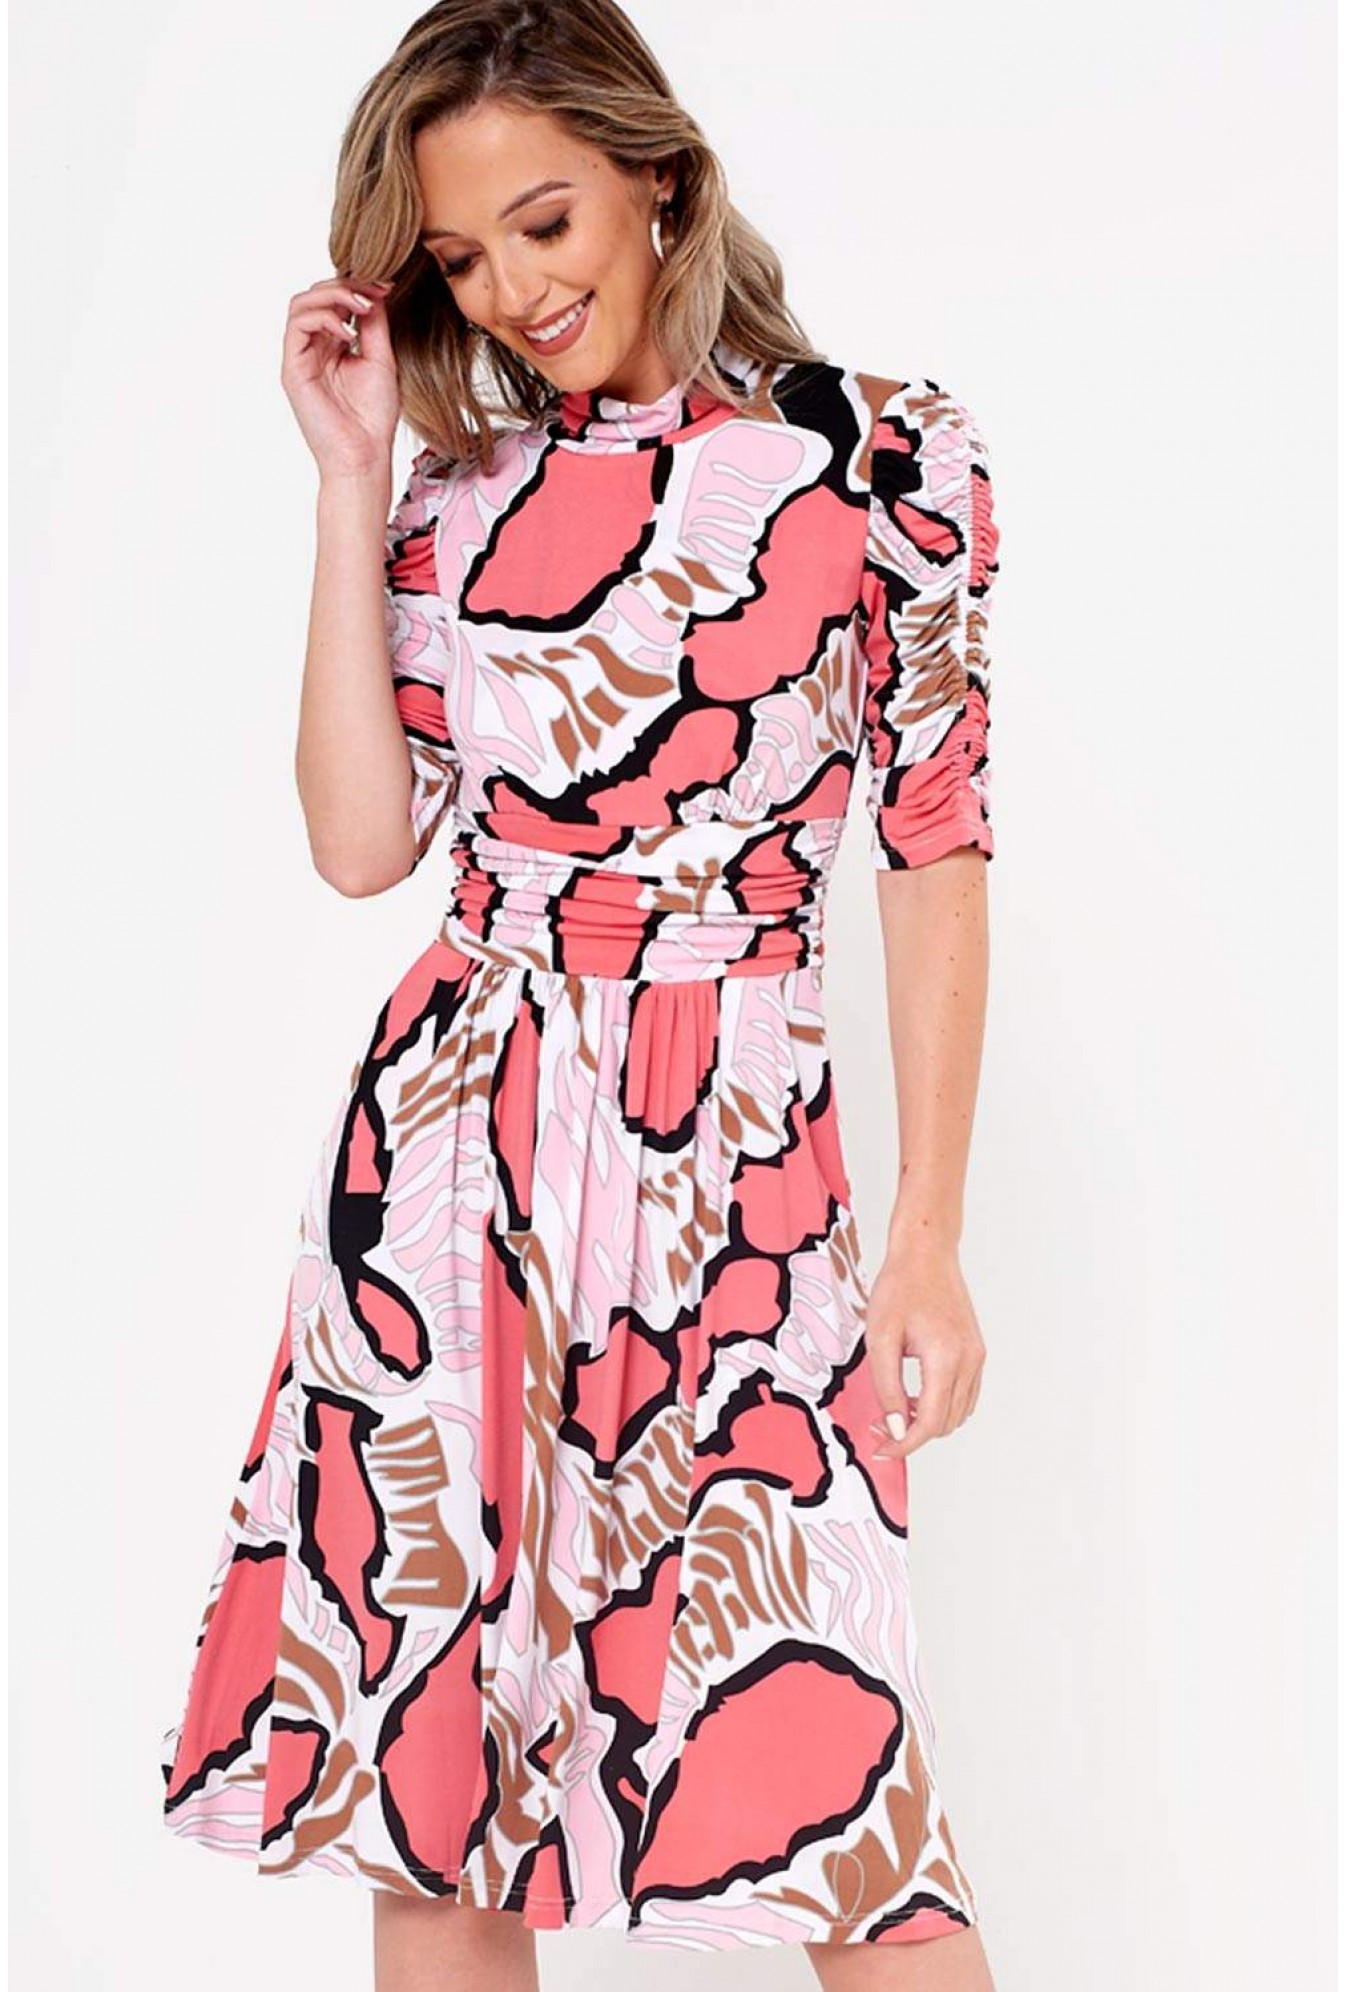 997471bfe2c10 Jolie Moi Kate Abstract Print Jersey Dress in Pink | iCLOTHING